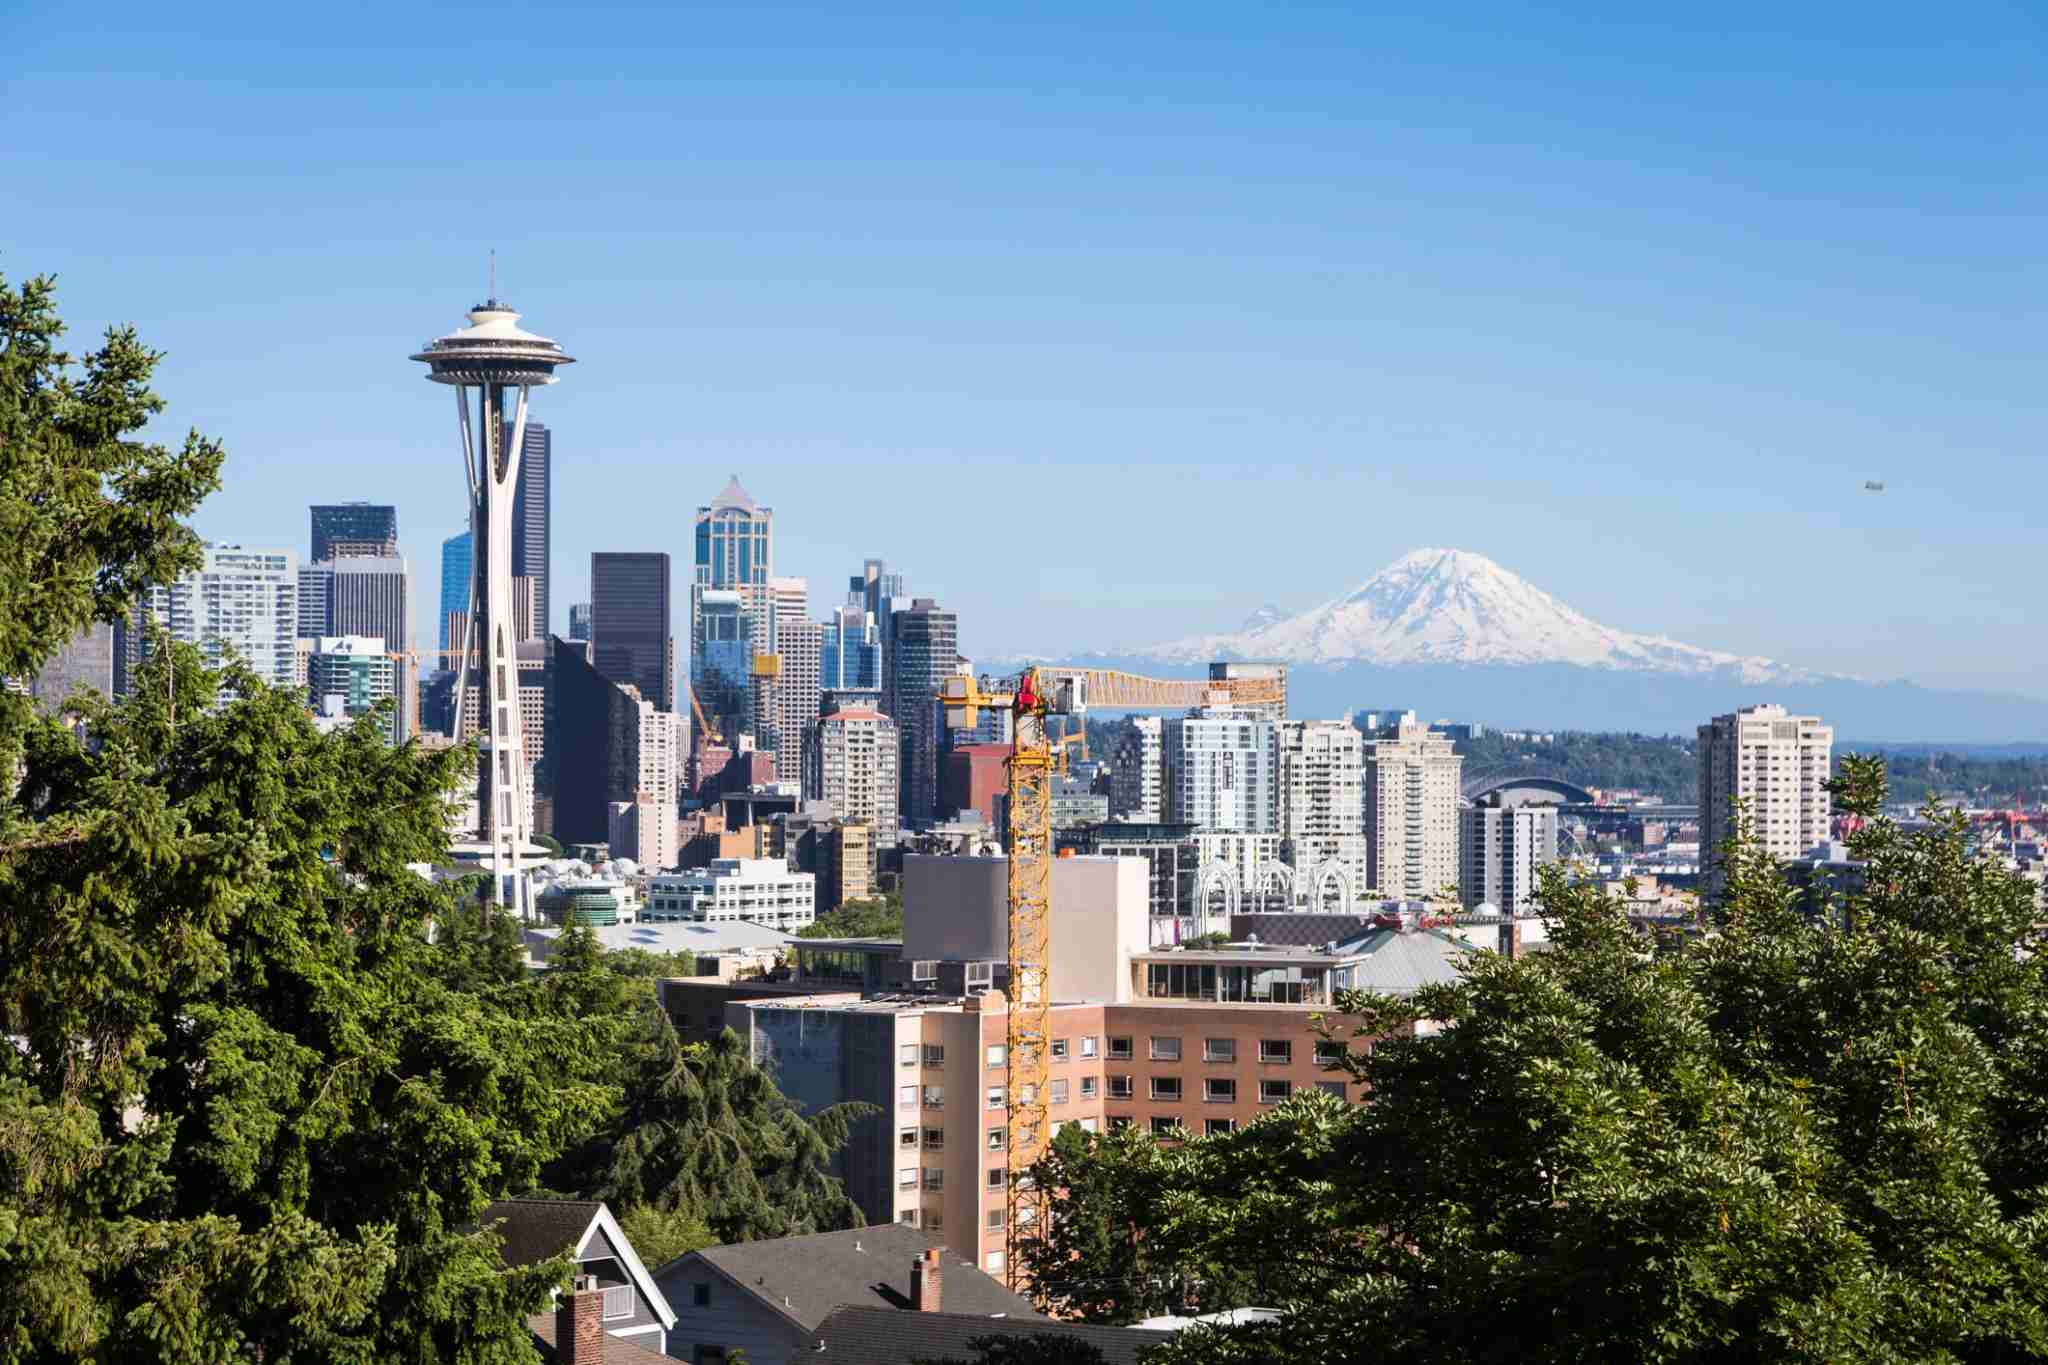 Fly from El Paso to Seattle on this new flight from Alaska Airlines. (Photo by Didier Marti / Getty Images)